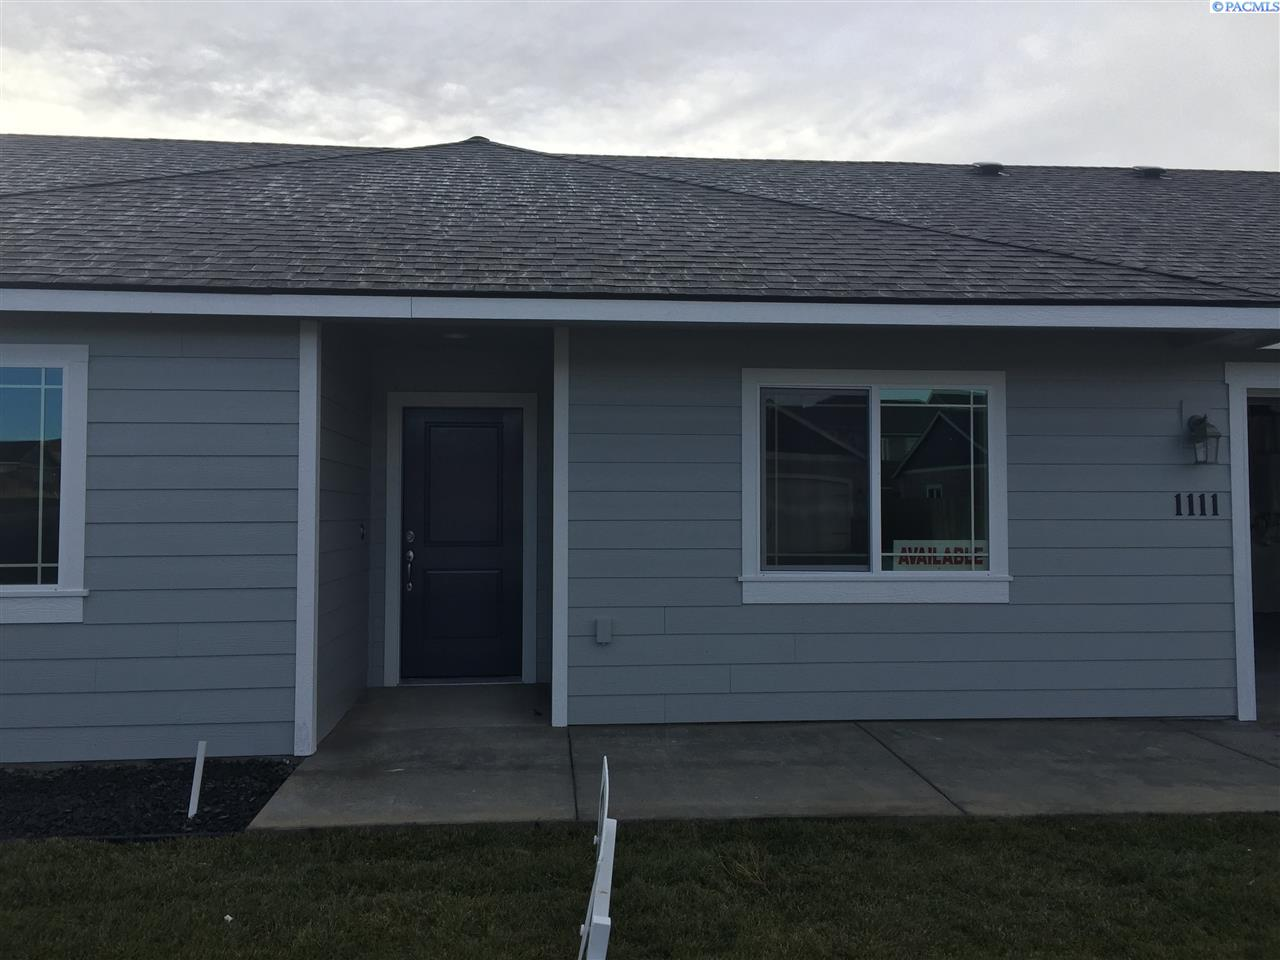 Single Family Home for Sale at 1111 W Clark Pl. 1111 W Clark Pl. Connell, Washington 99326 United States